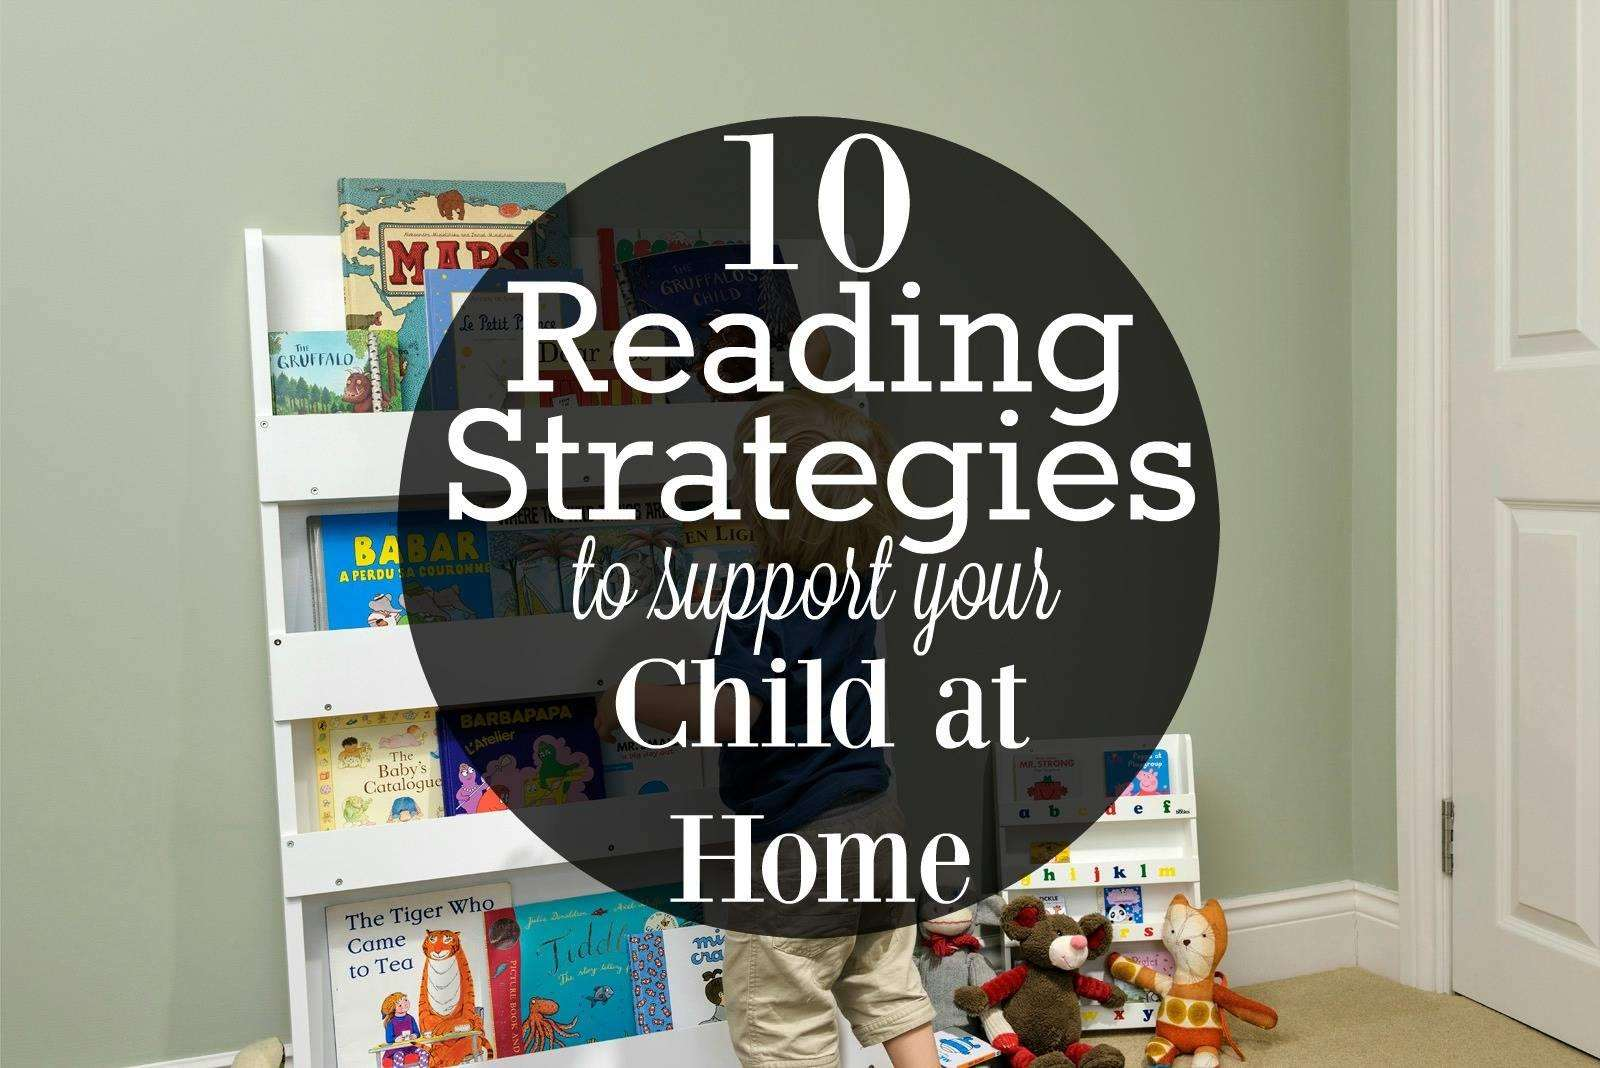 10 Reading Strategies to Support Your Child at Home + WIN a Tidy Books children's book case, reading strategies%, new-dad%